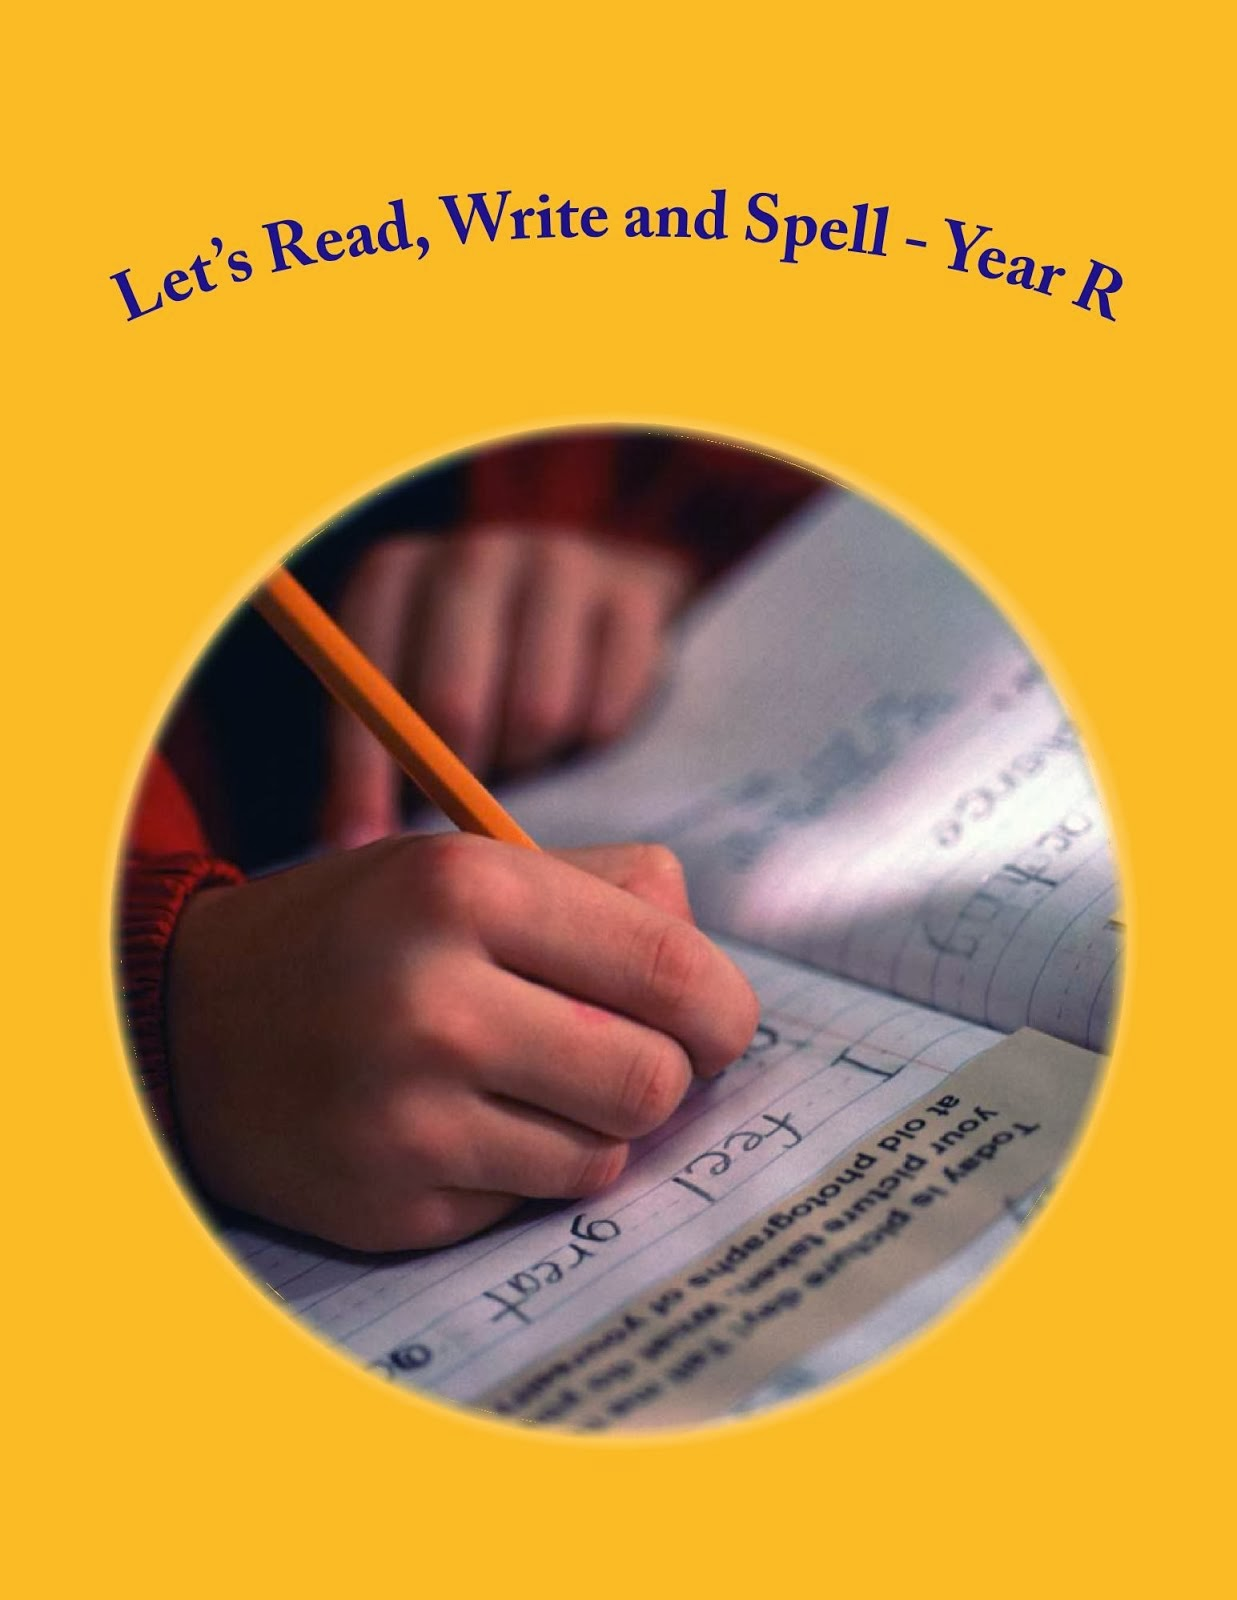 Let's Read, Write and Spell